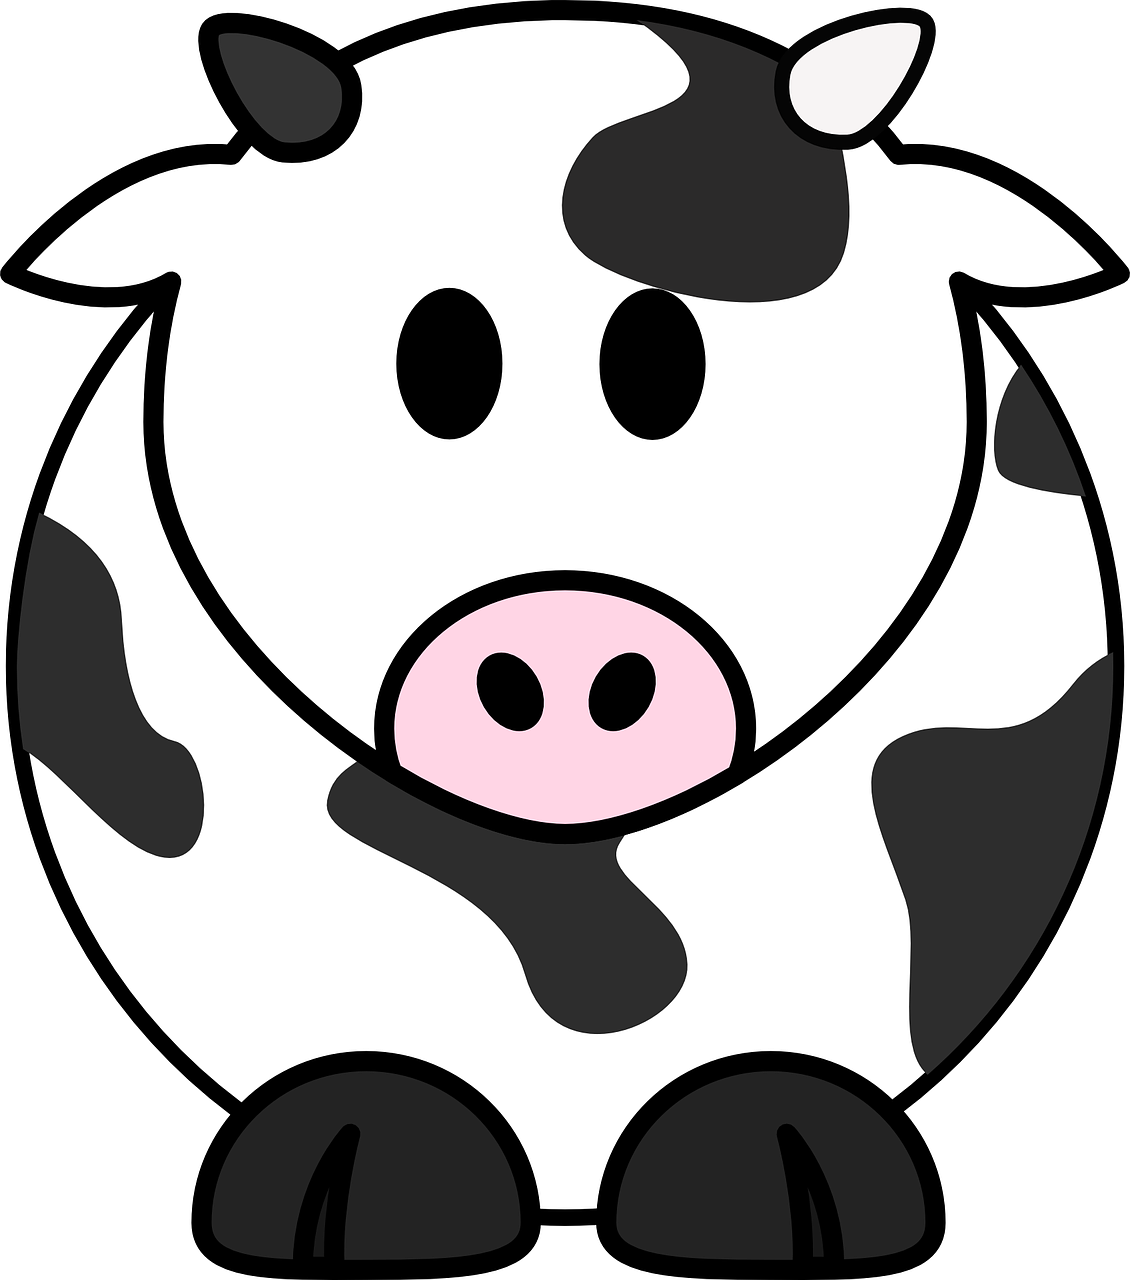 Free clipart farm animals black and white cow picture library stock Free Image on Pixabay - Milk Cow, Cow, Cattle, Black, White | Cow ... picture library stock